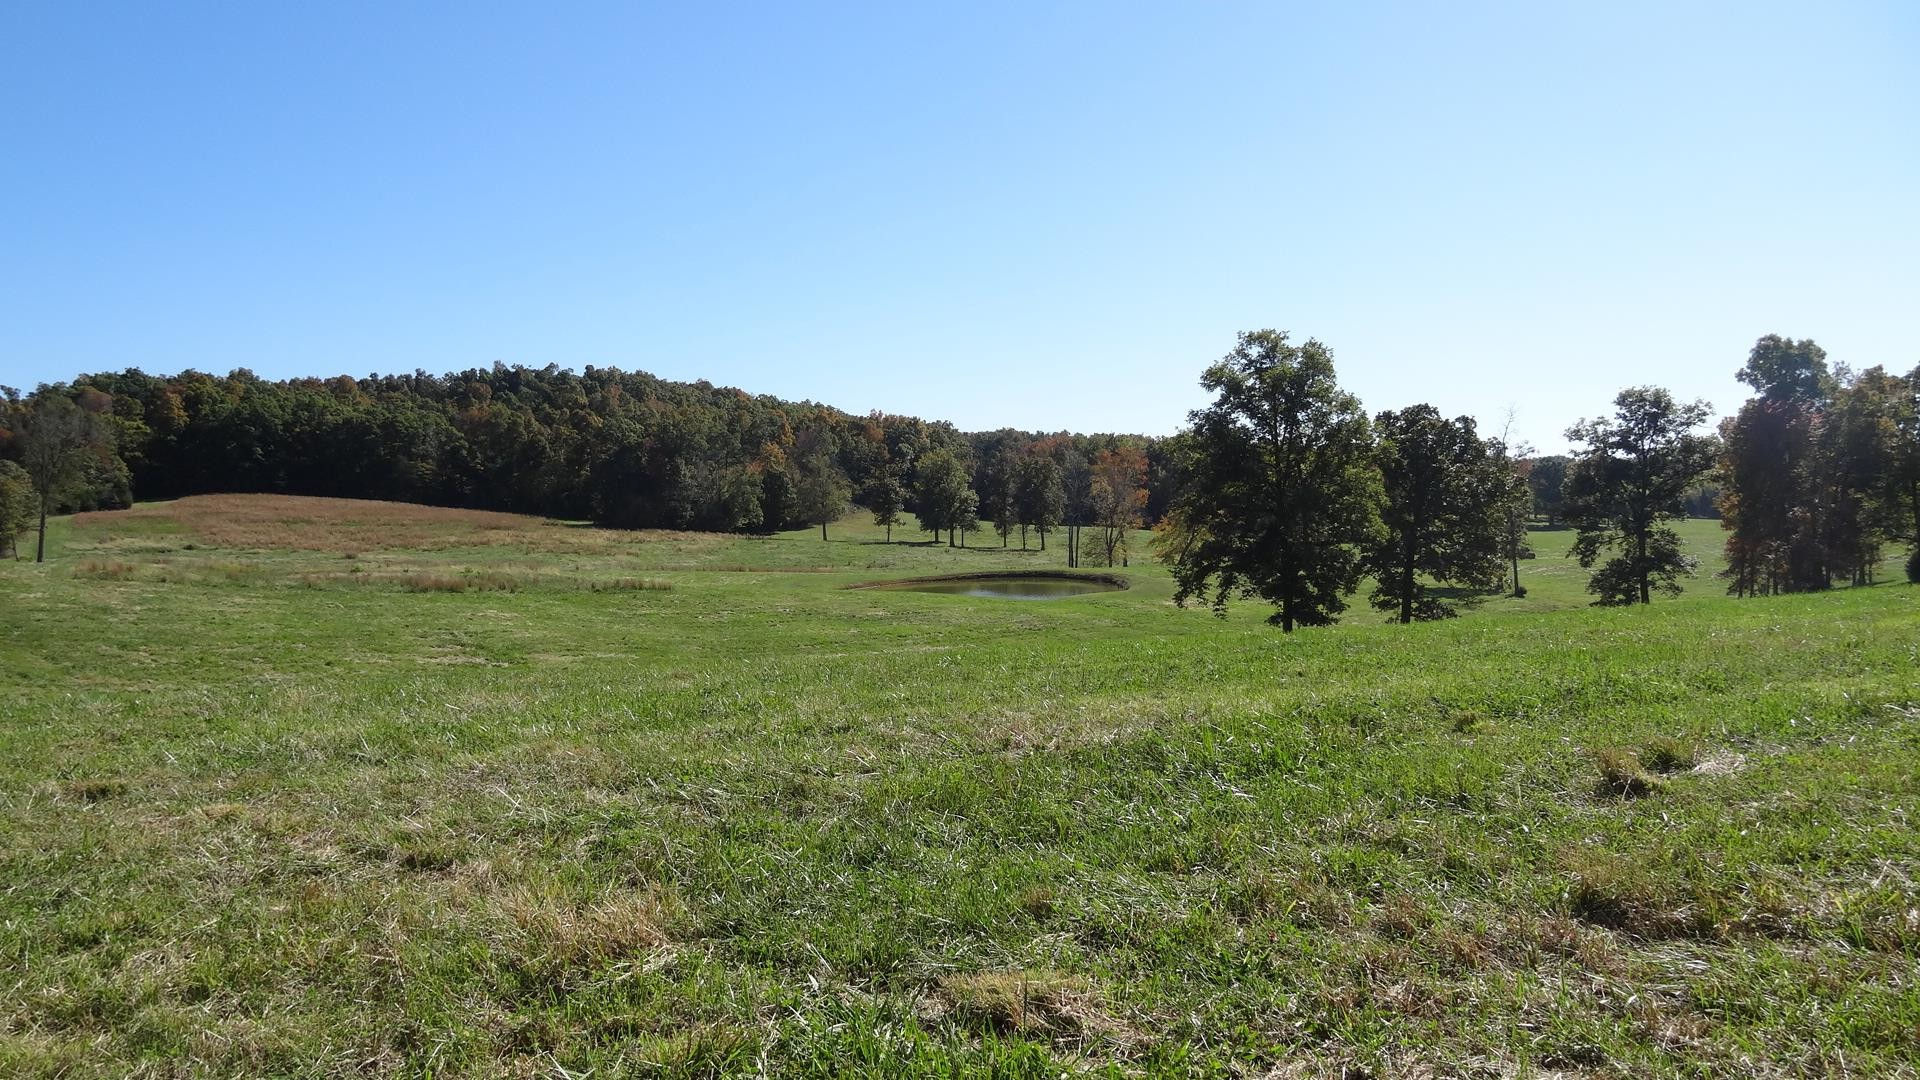 0 Skipworth Lane, Dunmor, KY 42339 - Dunmor, KY real estate listing